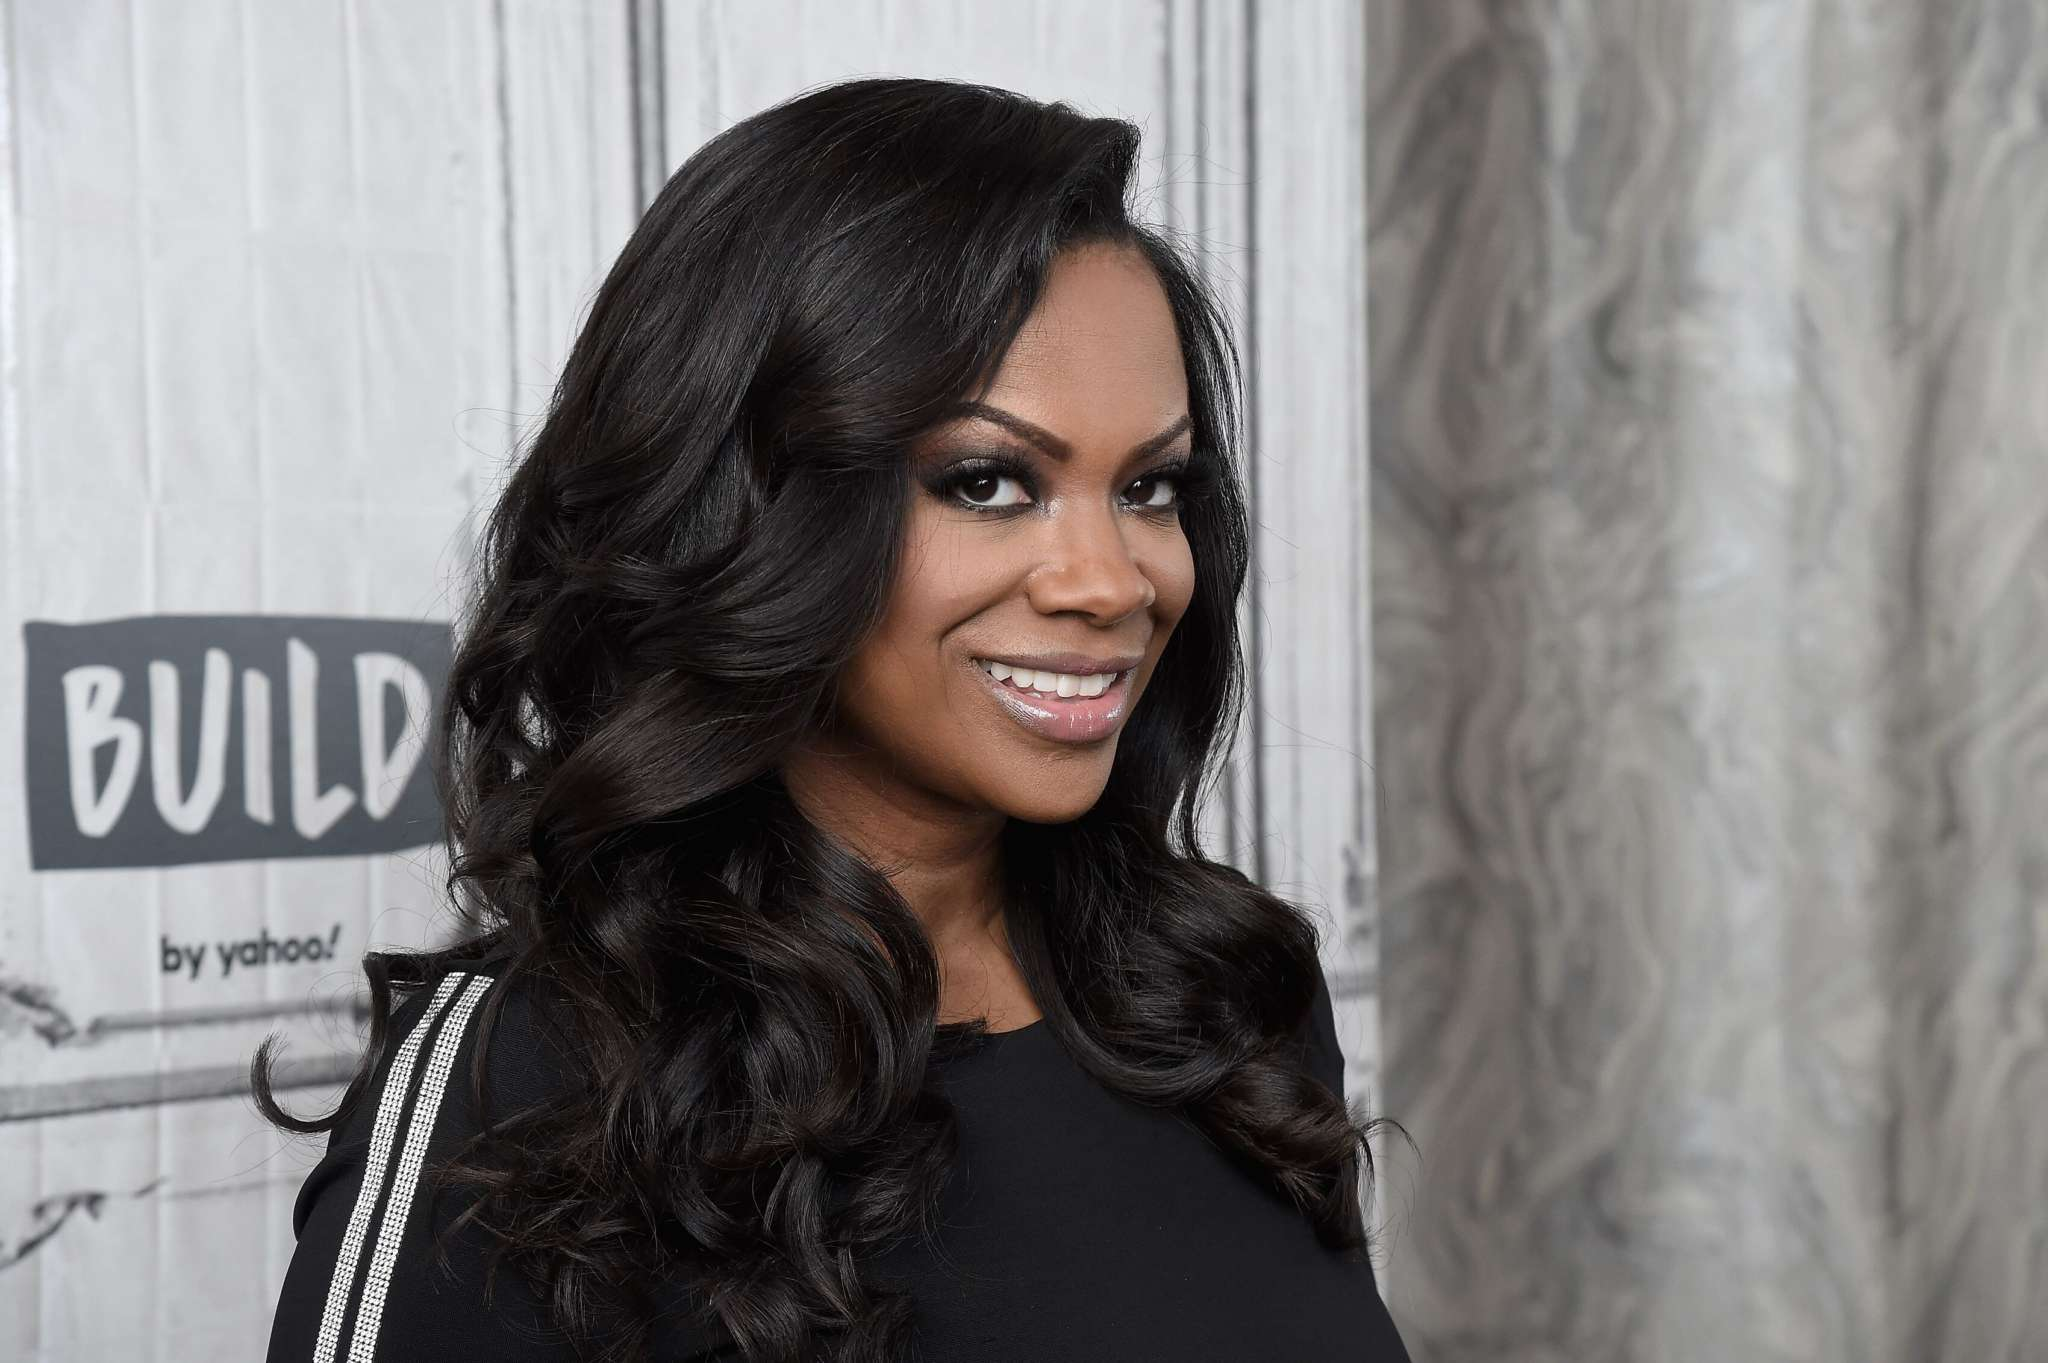 Kandi Burruss Celebrates One Of Her Pals' Birthday And Fans Love How Thoughtful She Is